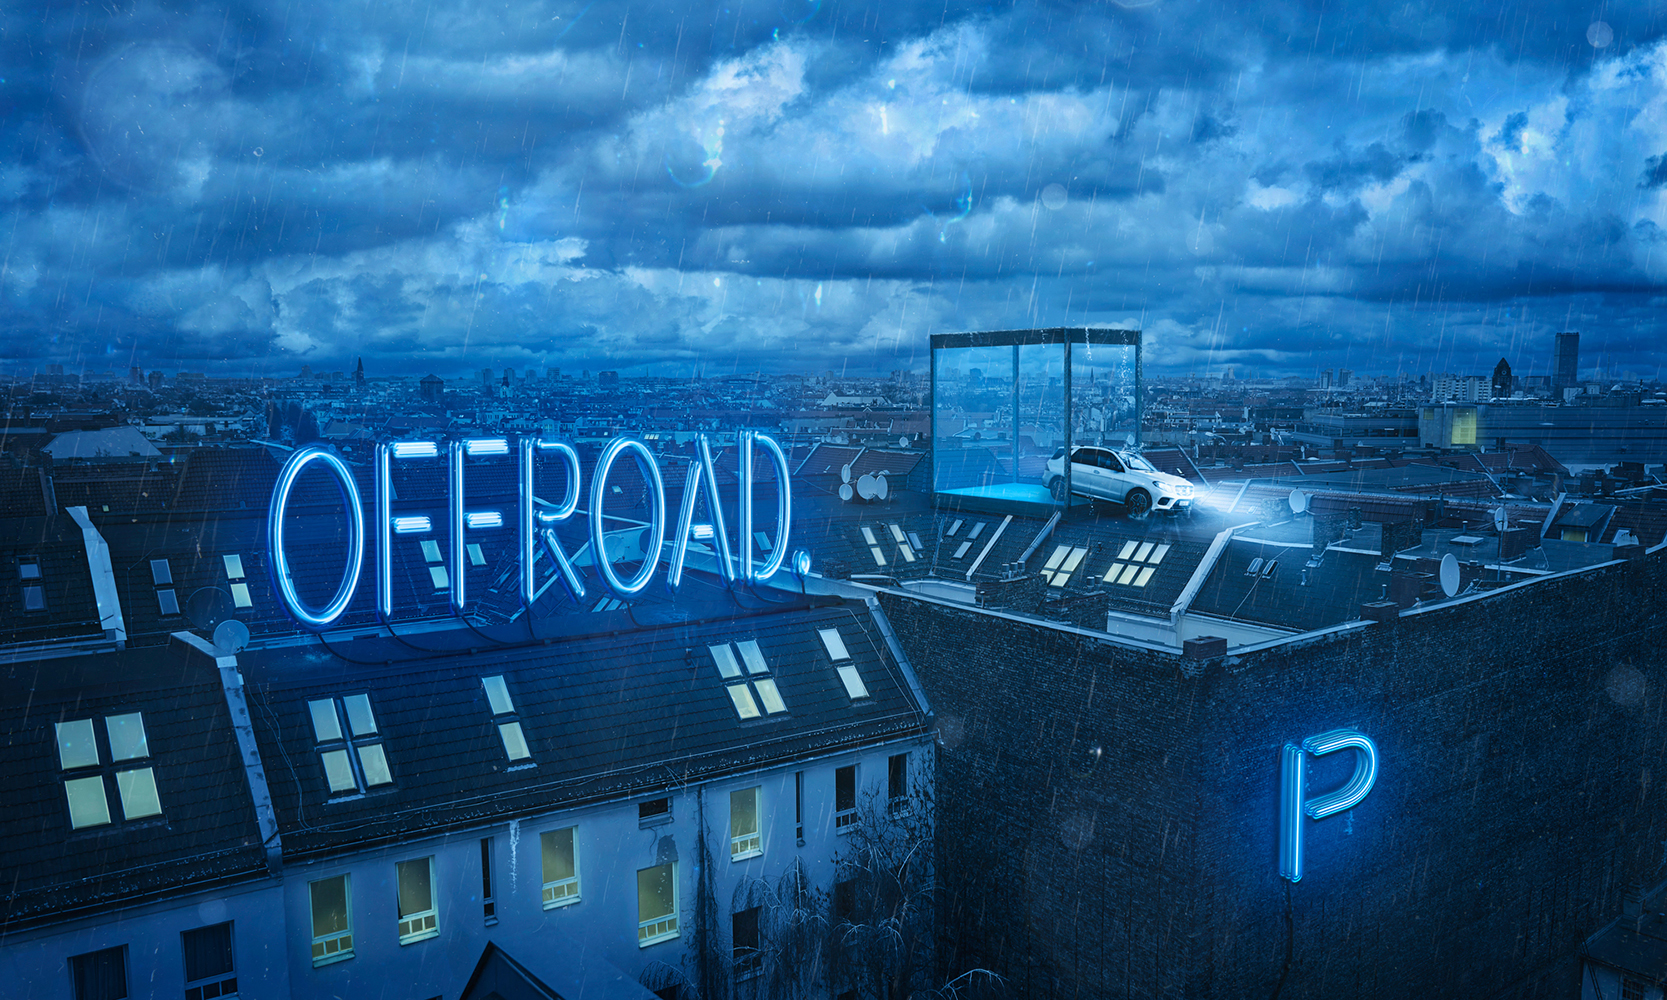 Commercial Advertisement Composing Landscape Ad Photoshop Composite 3D Photography - by Julian Erksmeyer Mercedes Berlin Rooftop